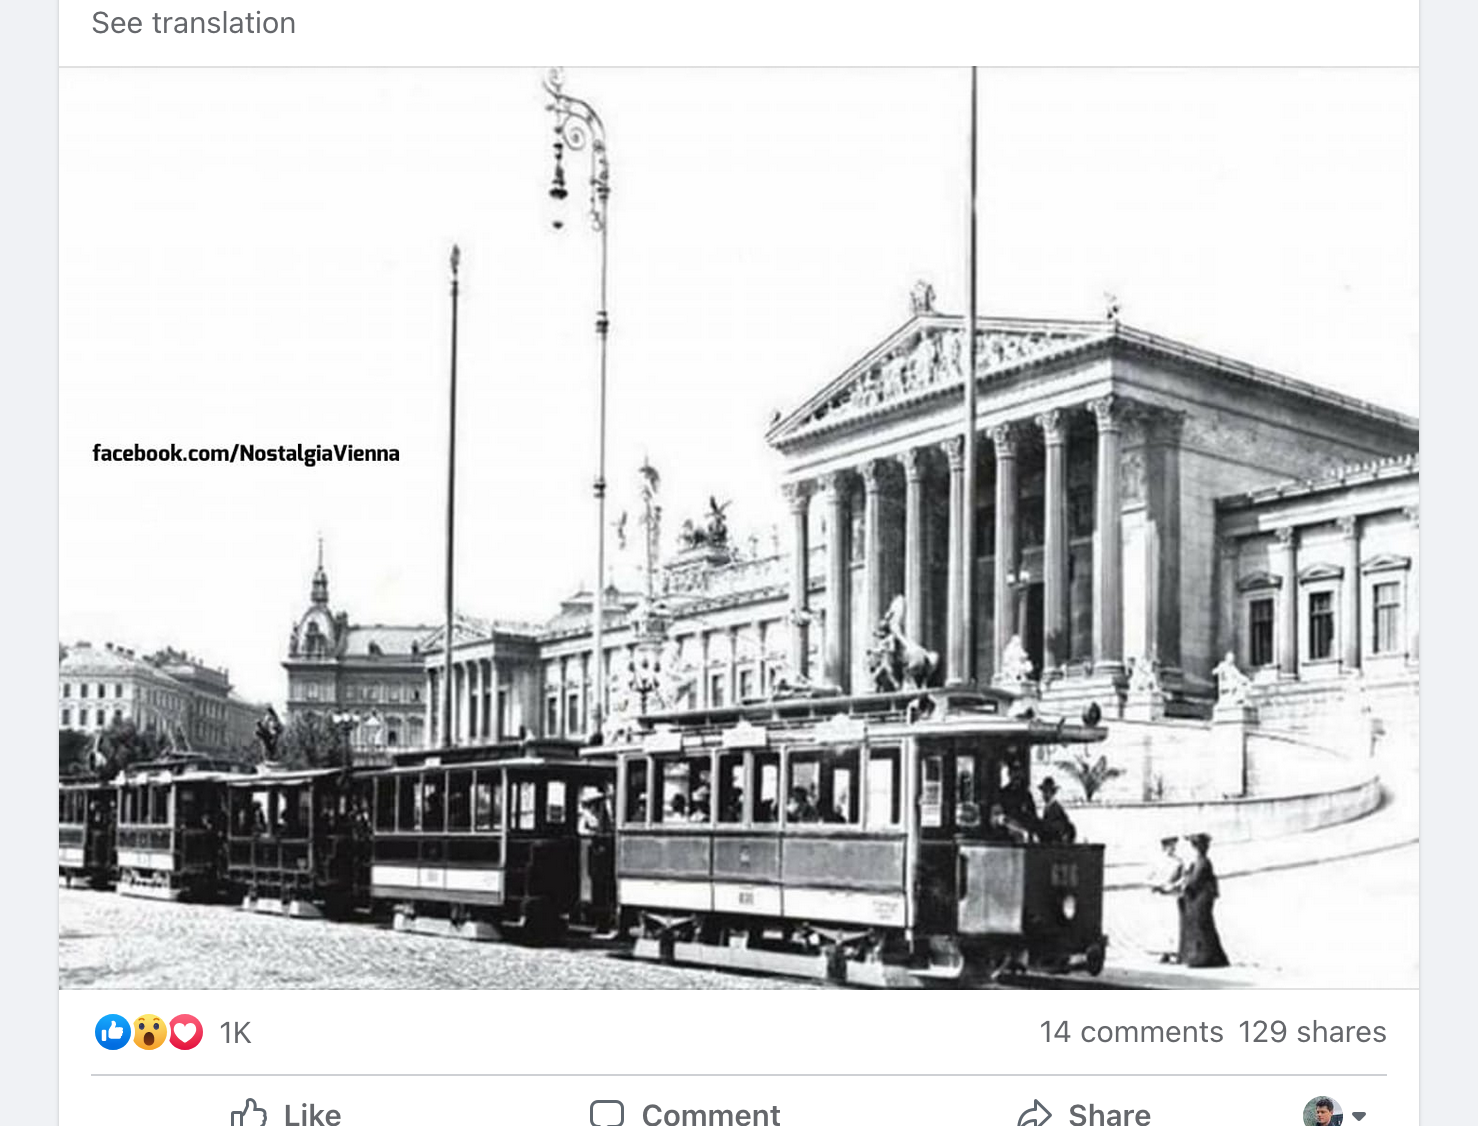 Yet another Facebook Suggested Post Tram picture